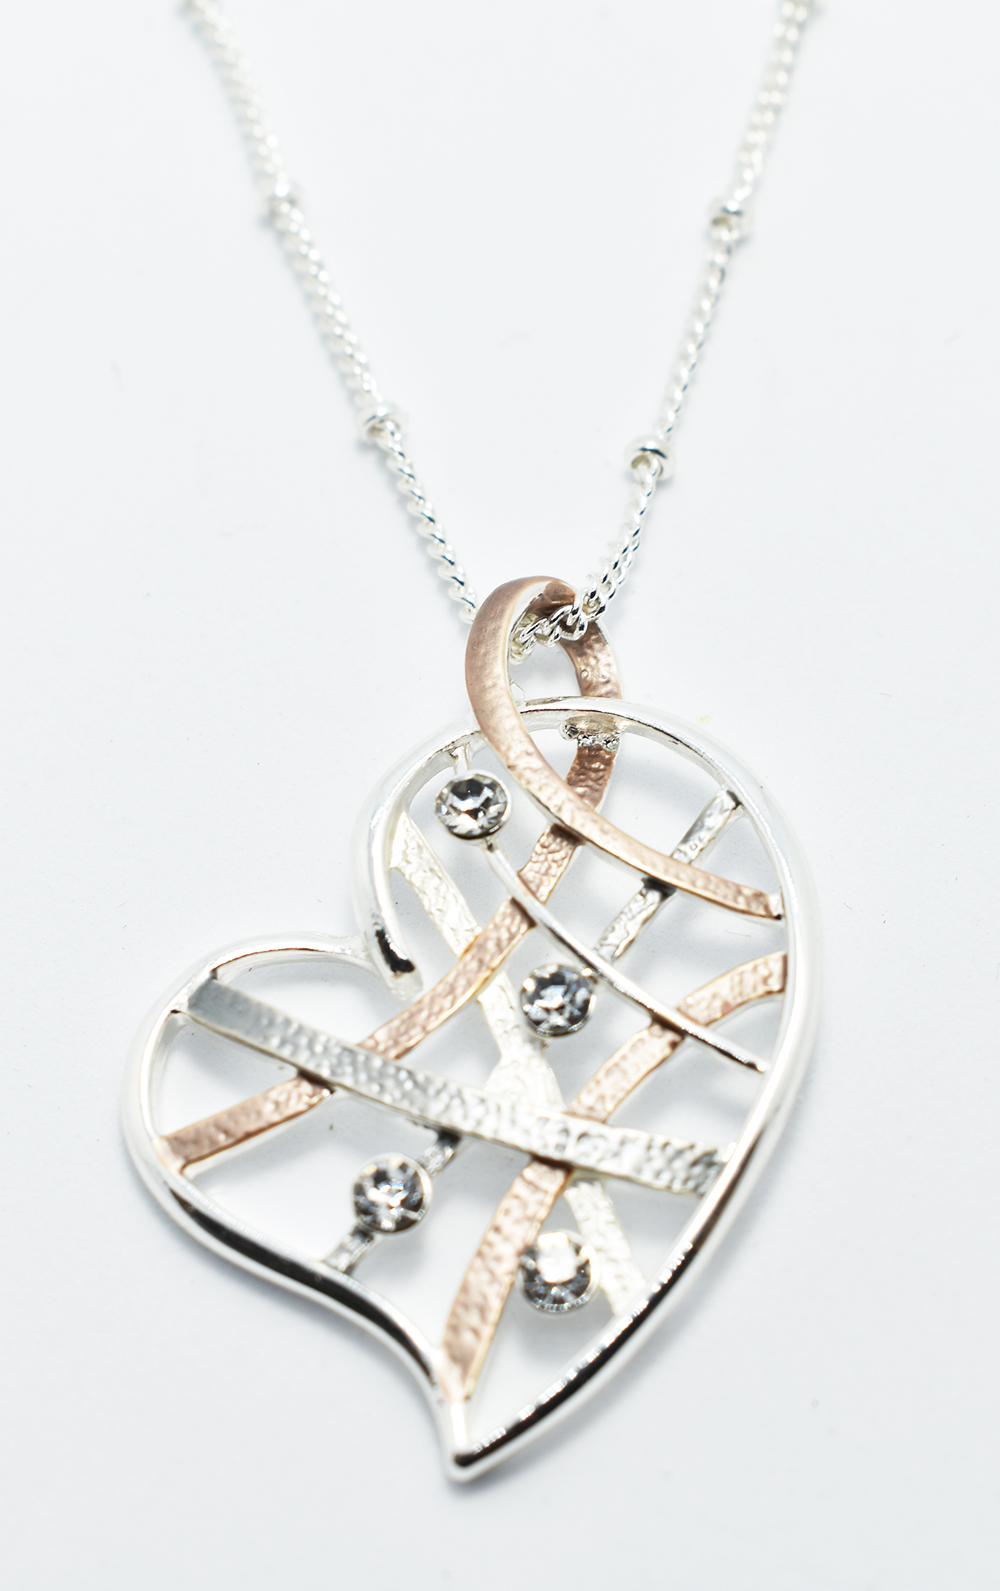 Fashion Necklace: Silver Necklace with a Simple Crystal Encrusted Heart